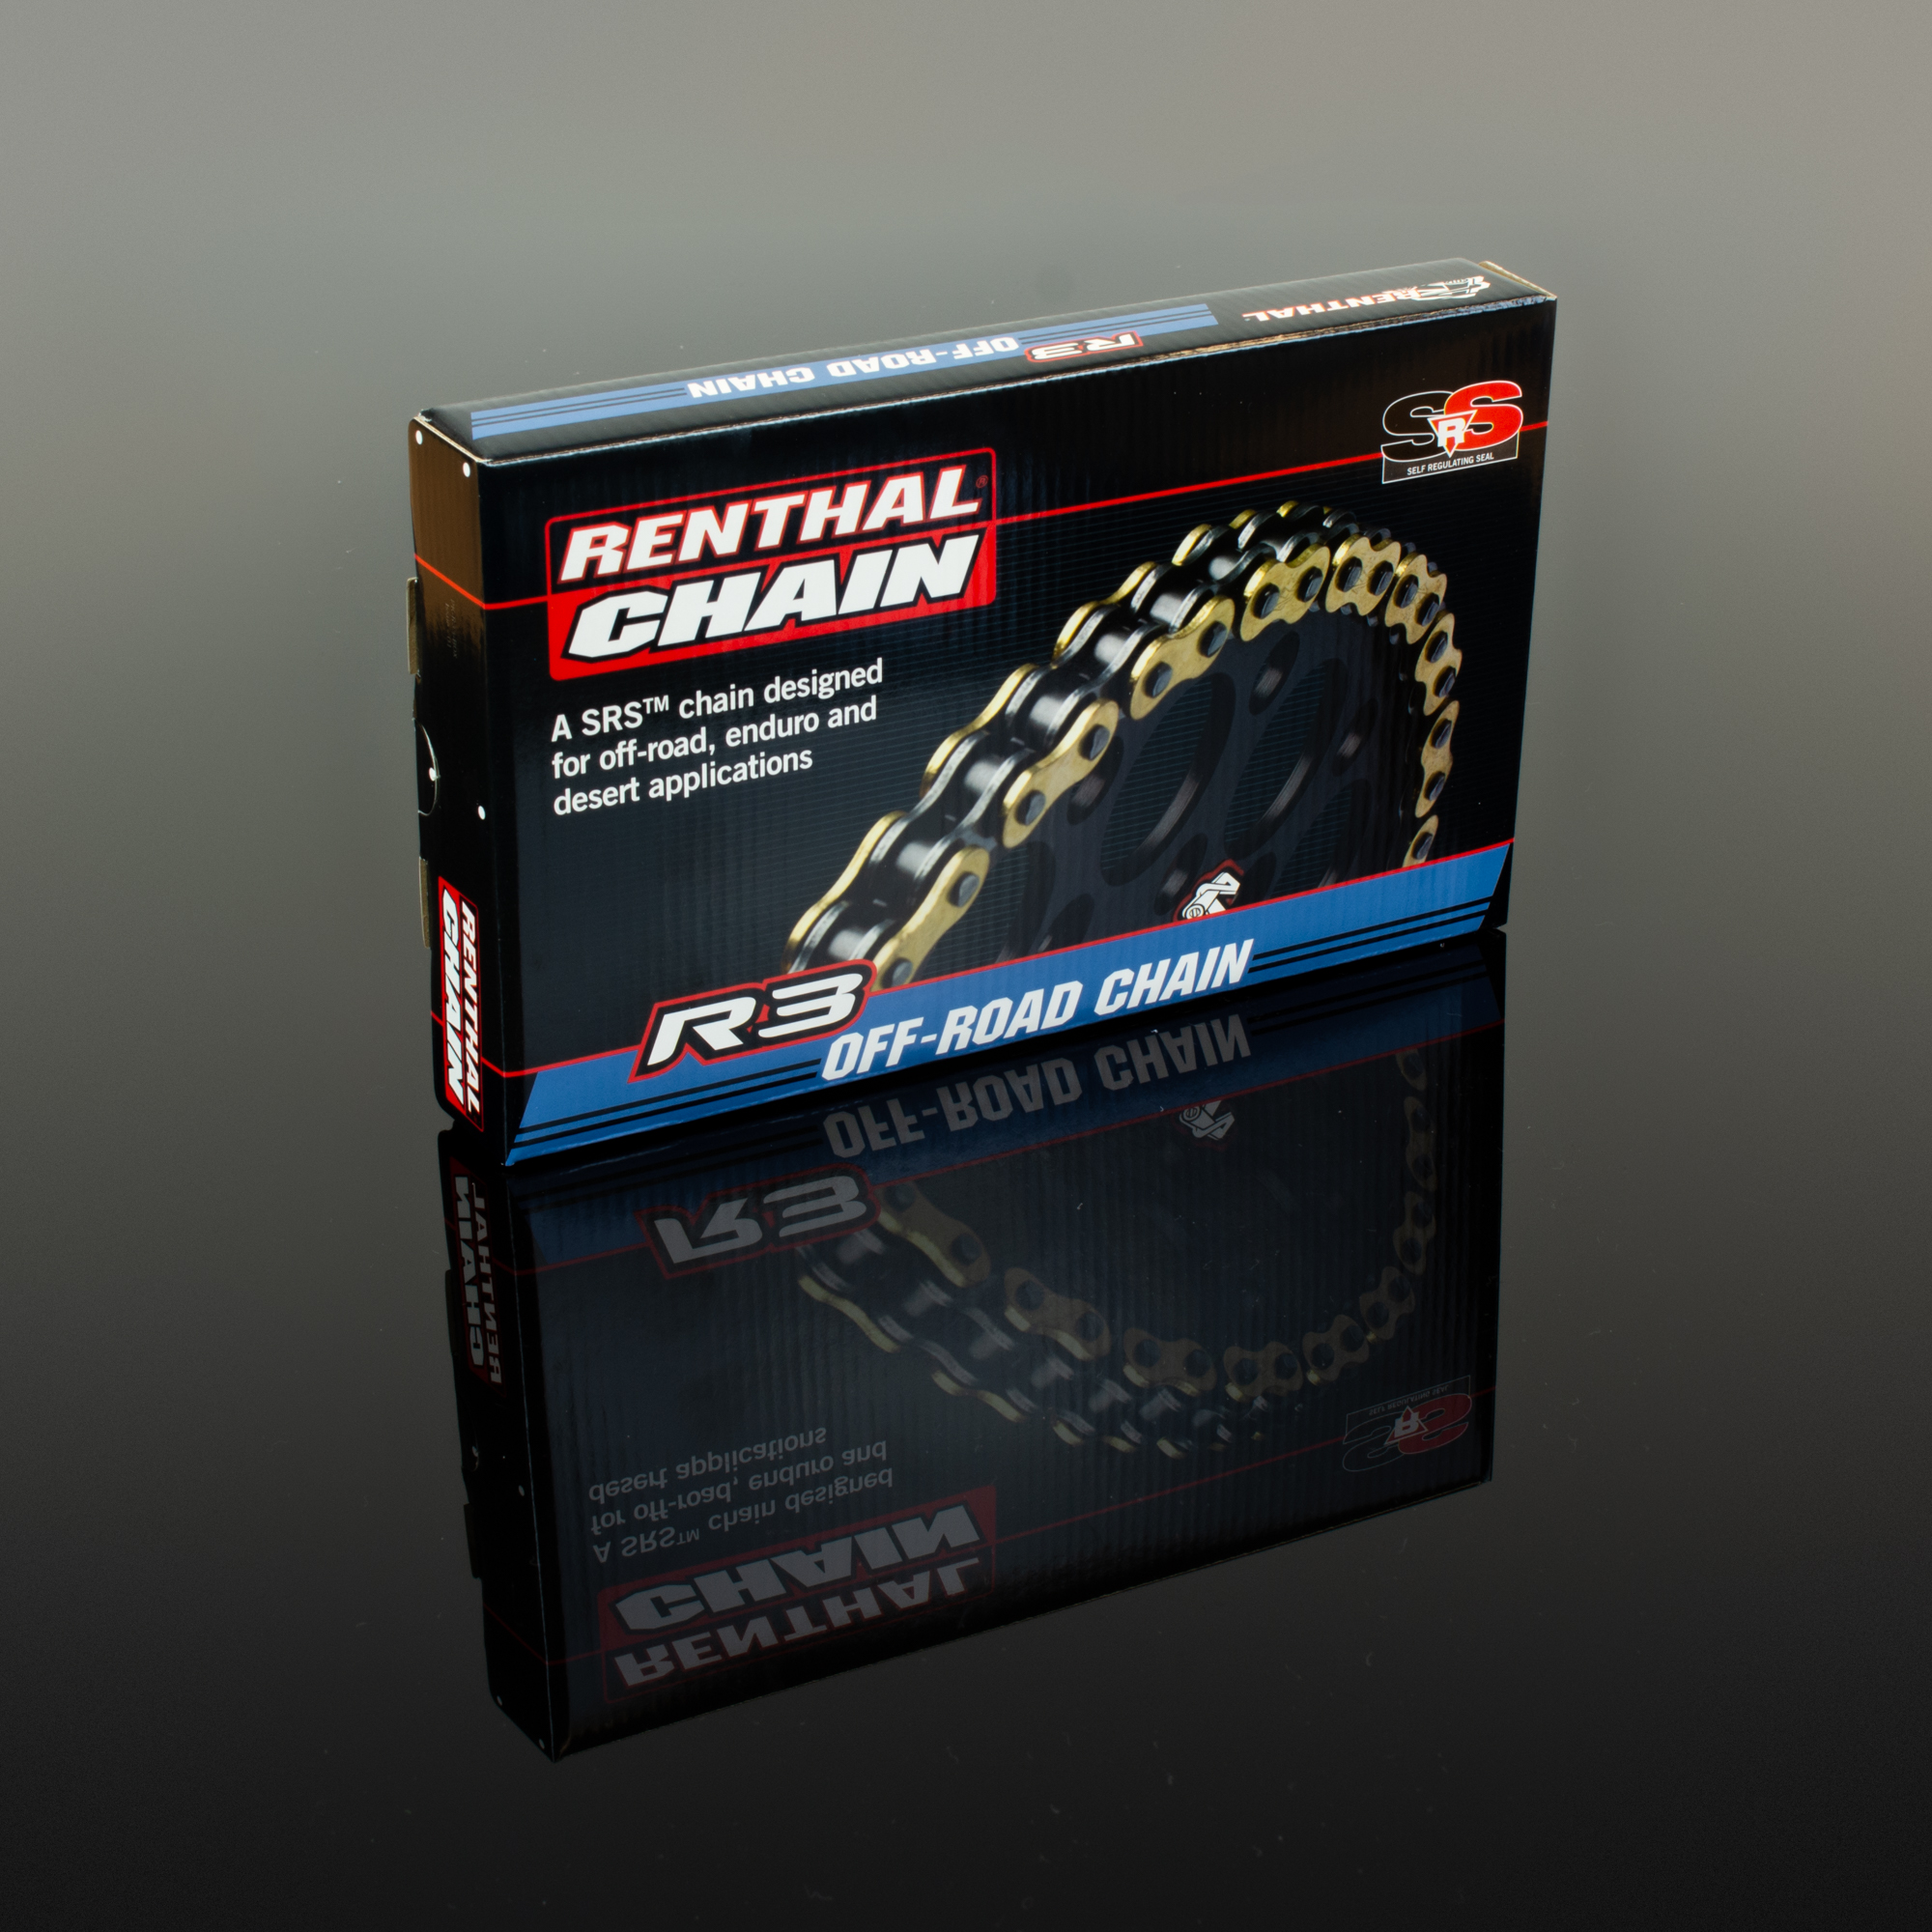 Renthal 420 R1 Works Non O-Ring Offroad Chain 130 Link